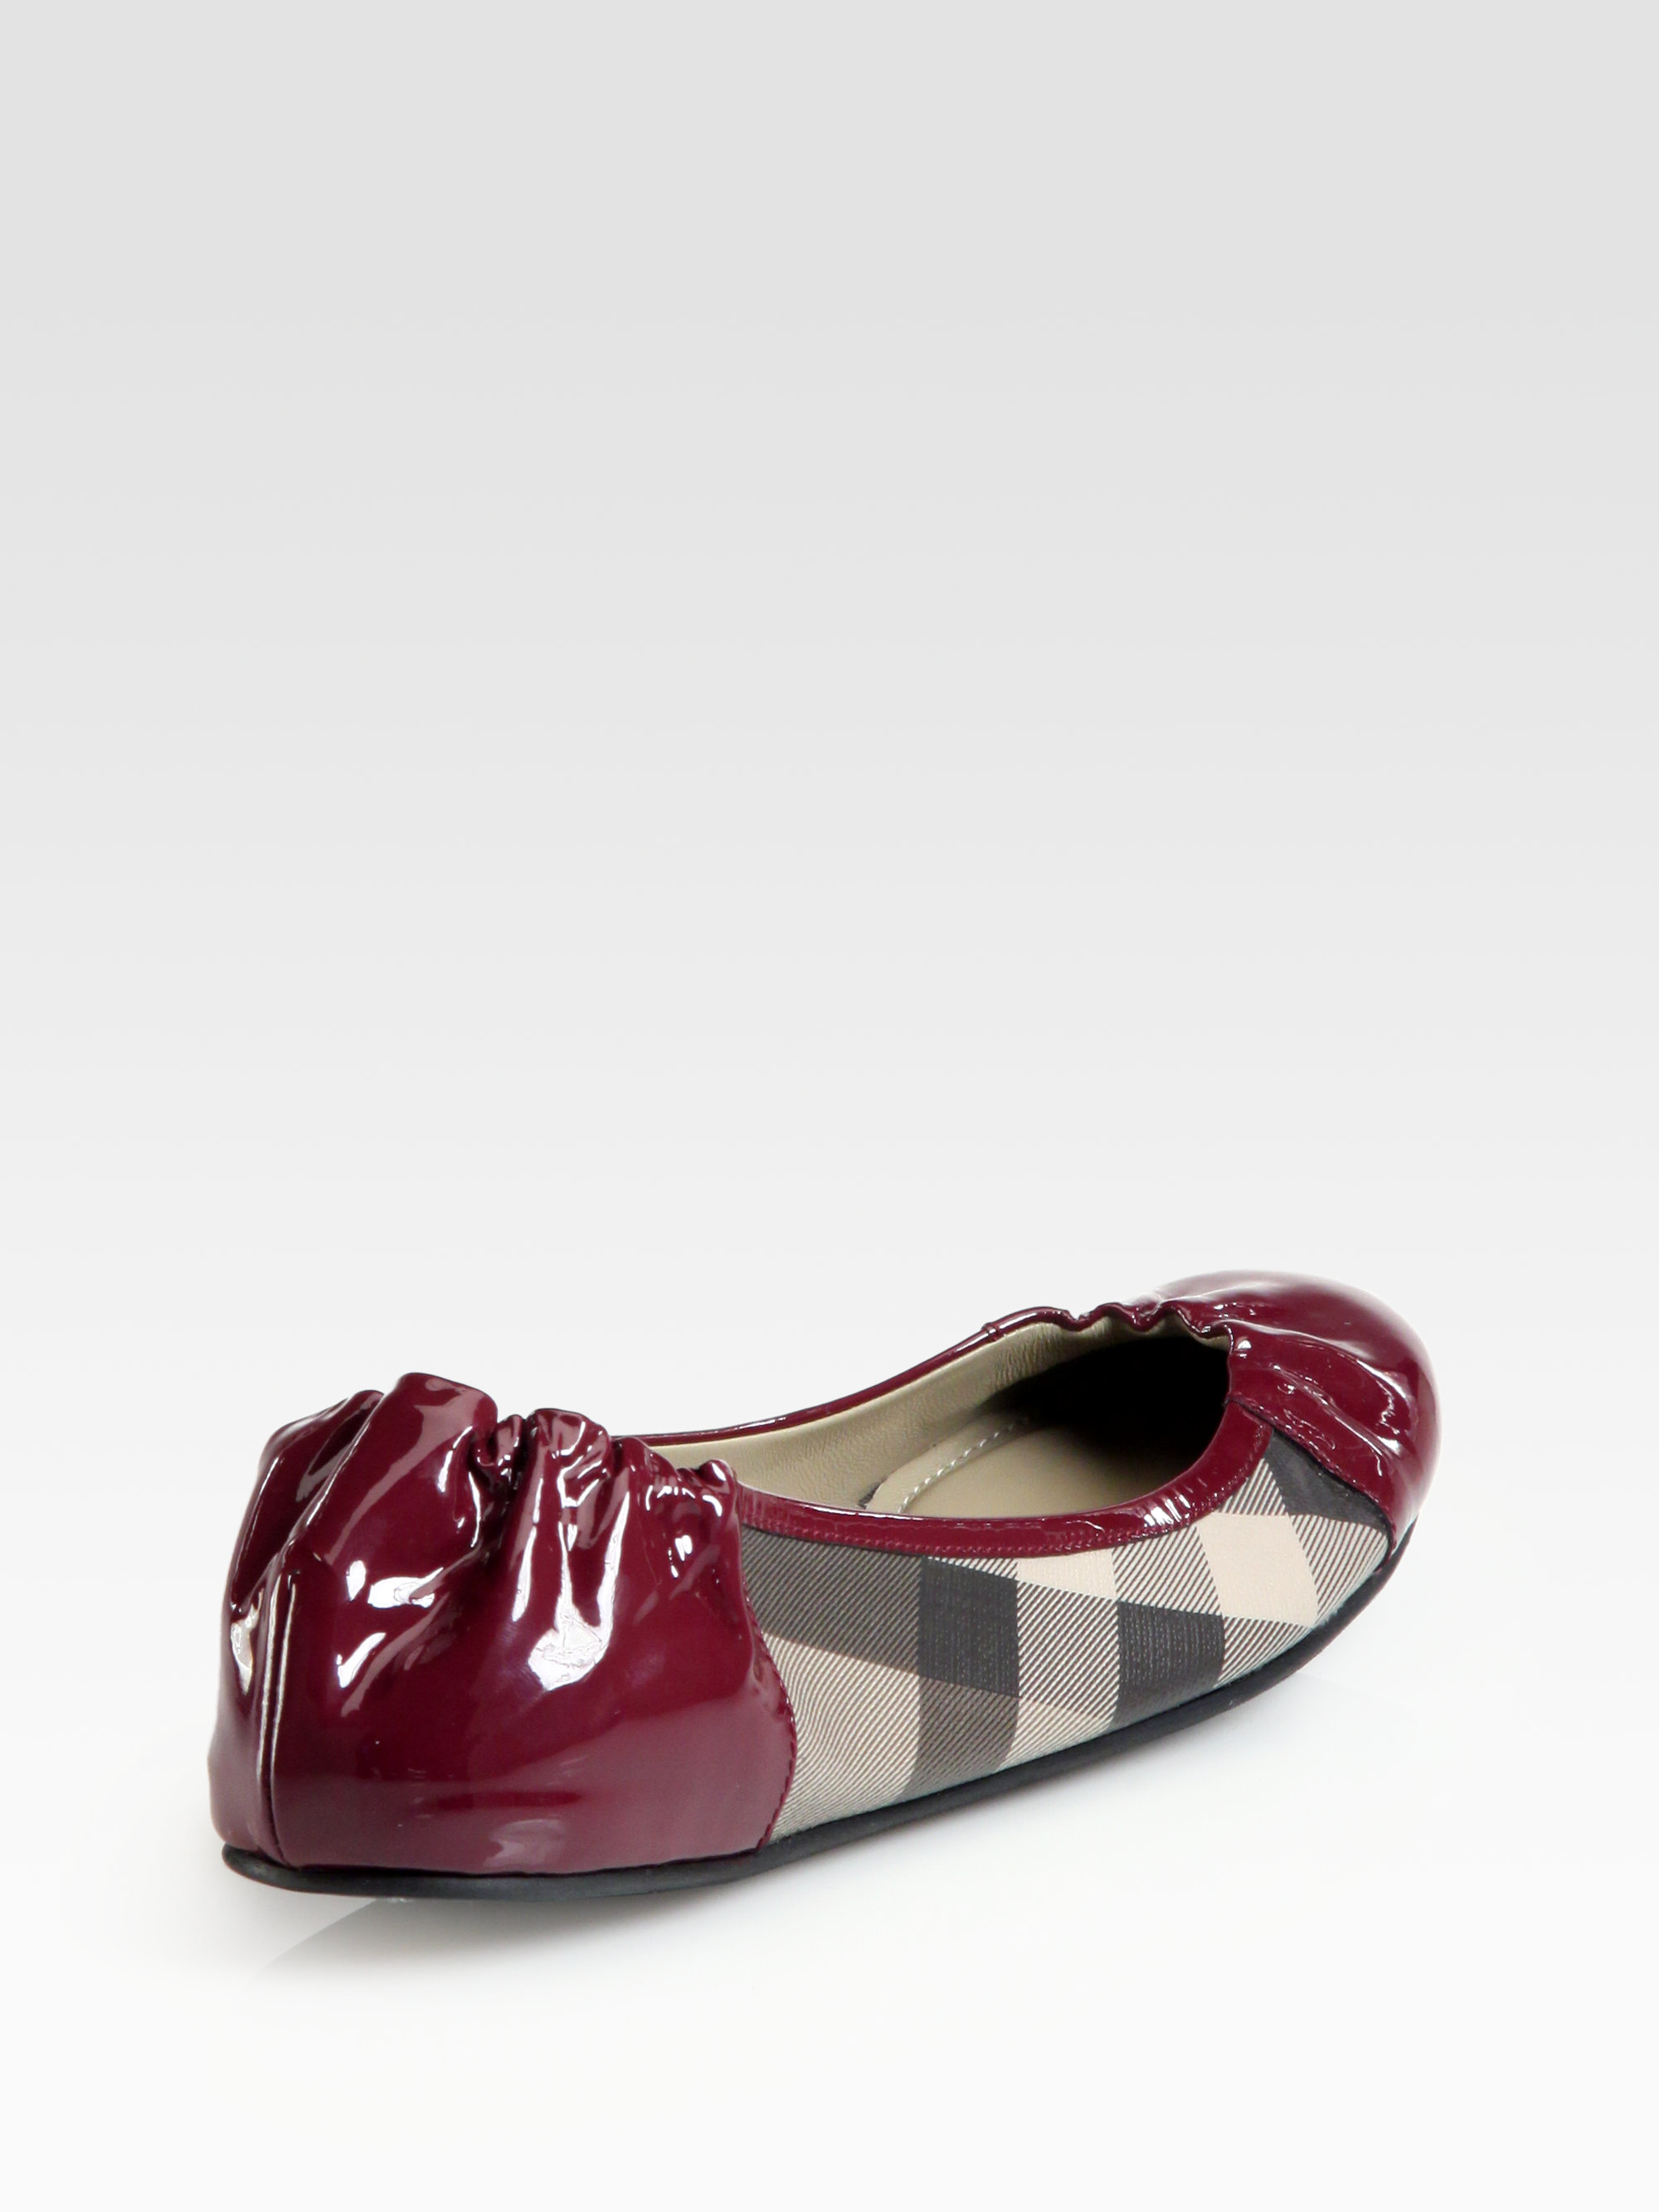 Burberry Patent Leather Ballet Flats D9Aw5q8H